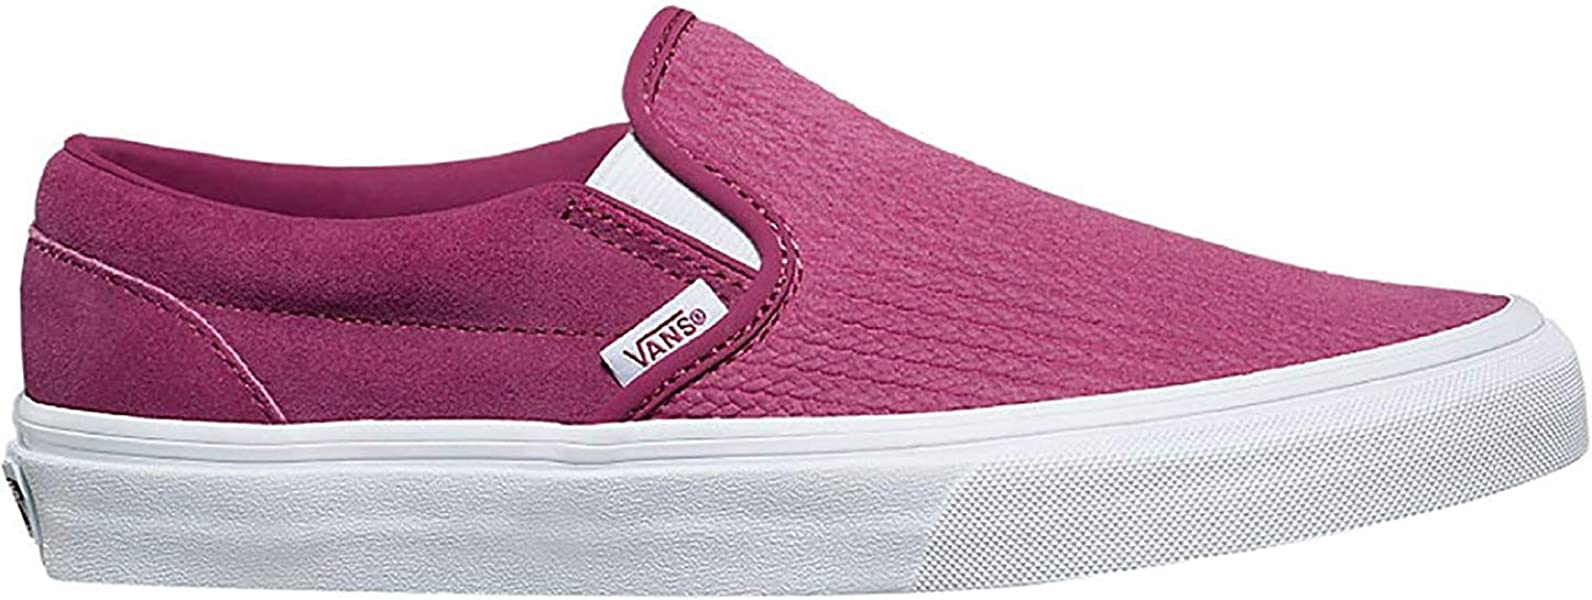 8b87b3ebe54 Vans Classic Slip-On (Suede) Unisex Womens Skateboarding-Shoes  VN-0A38F7U7R 6